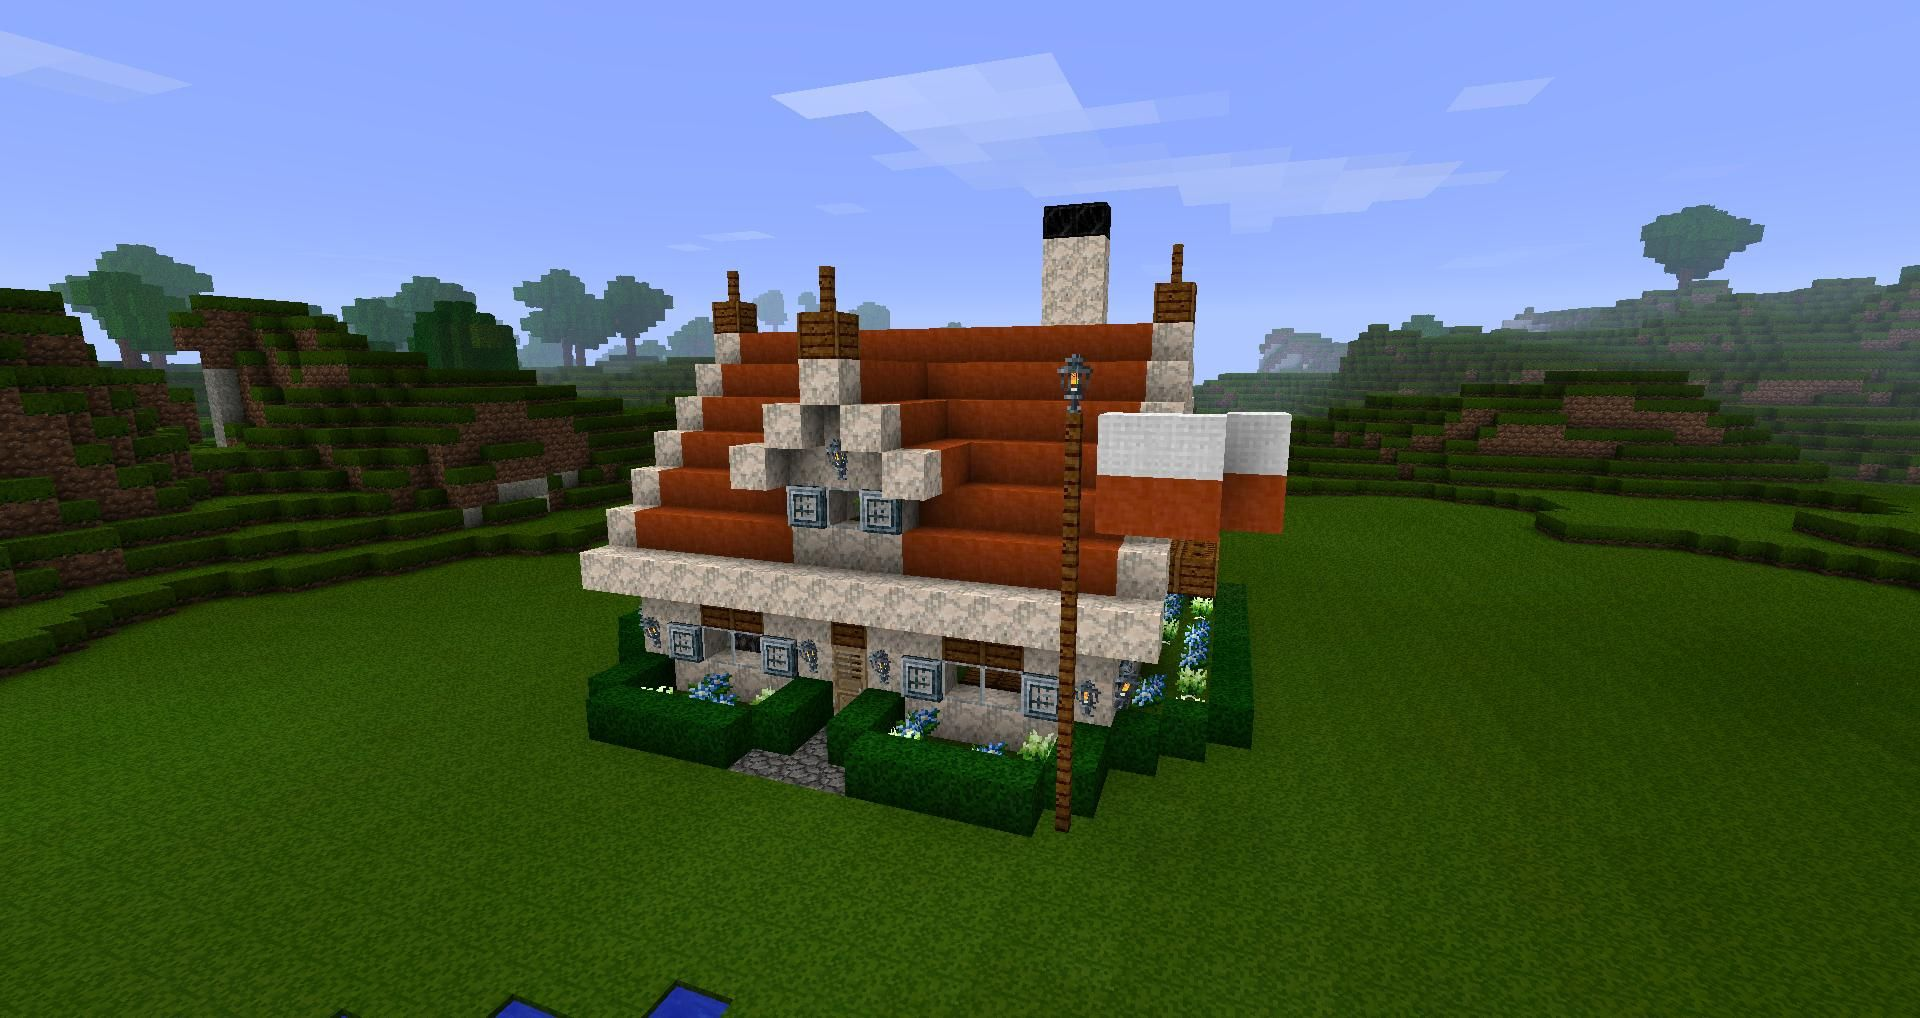 fc128ae5b5d965f9f8d757fada6df6b1 - 42+ Easy Cool Small Minecraft House Designs Pictures